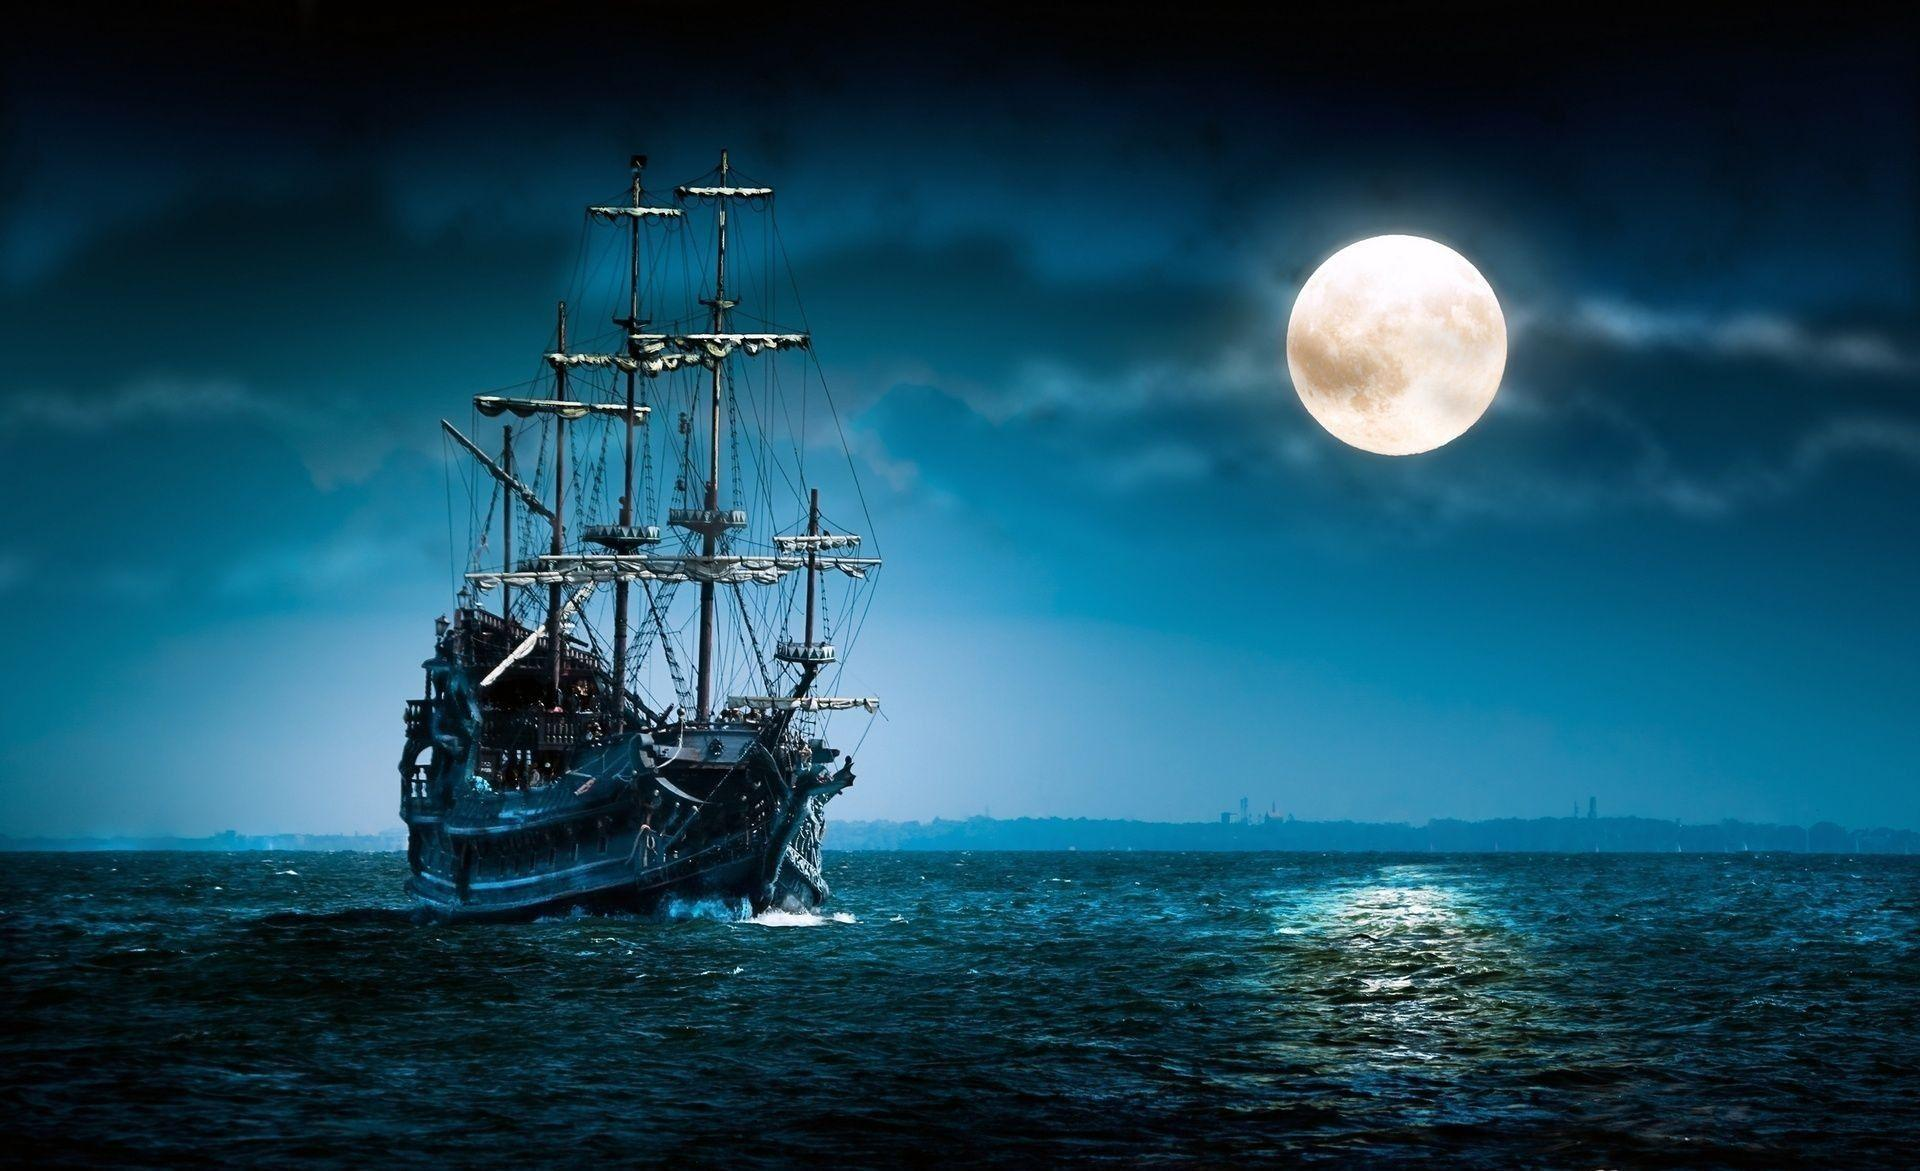 Full Moon Night Ship - NineWallpaper